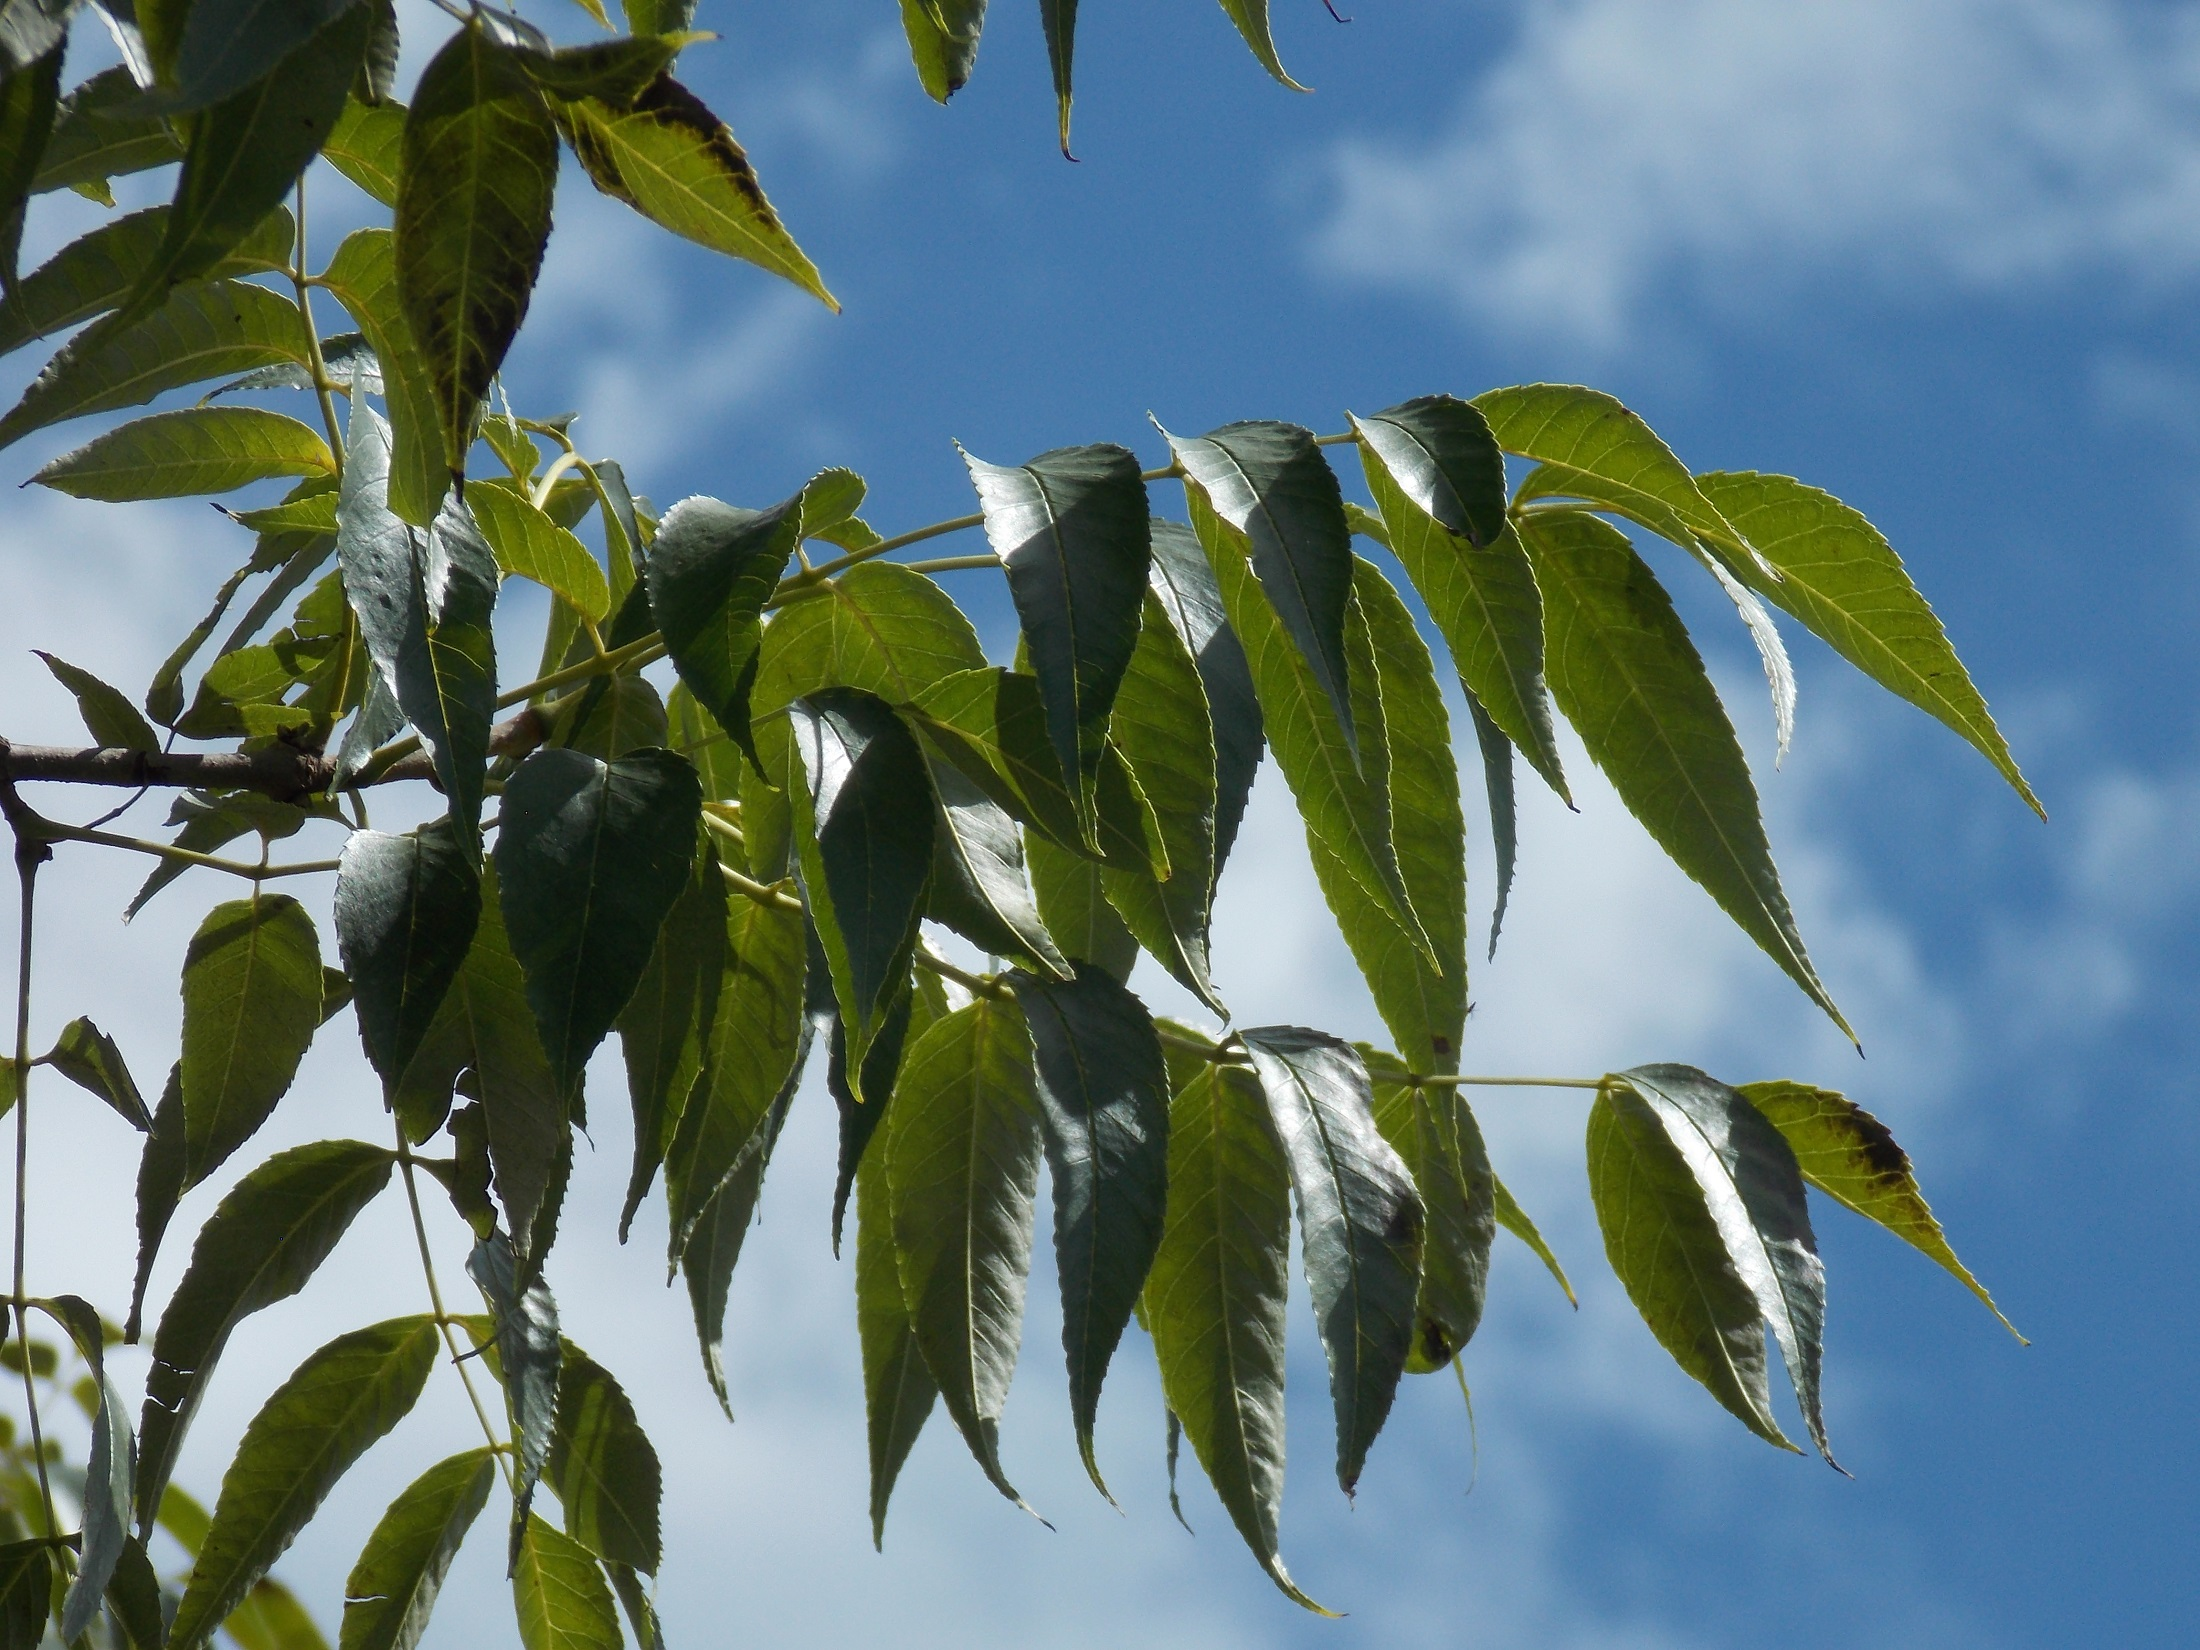 Leaves of blue ash